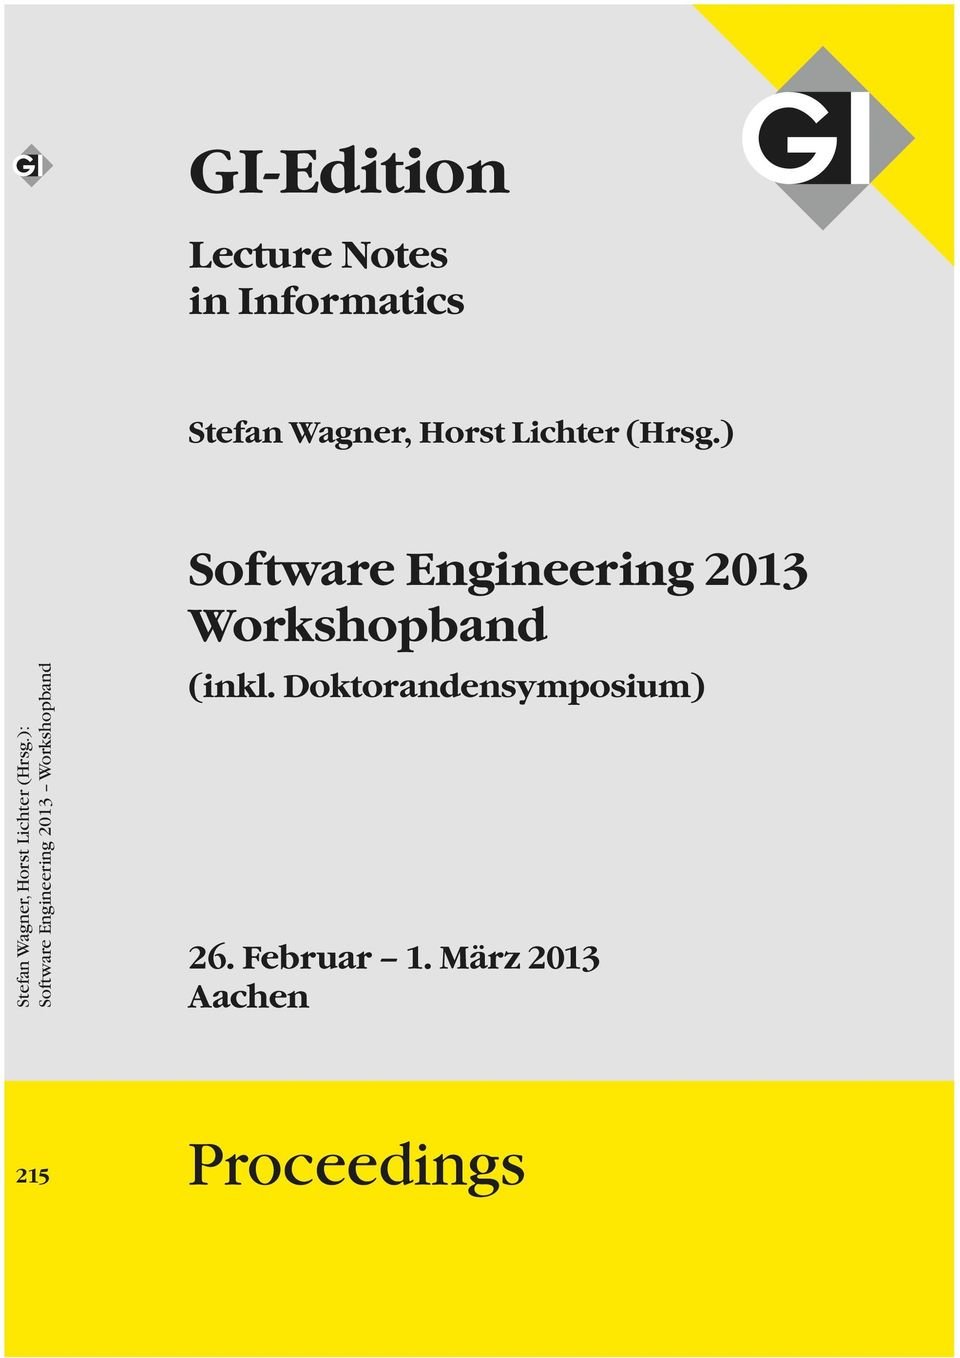 ): Software Engineering 2013 Workshopband Software Engineering 2013 Workshopband